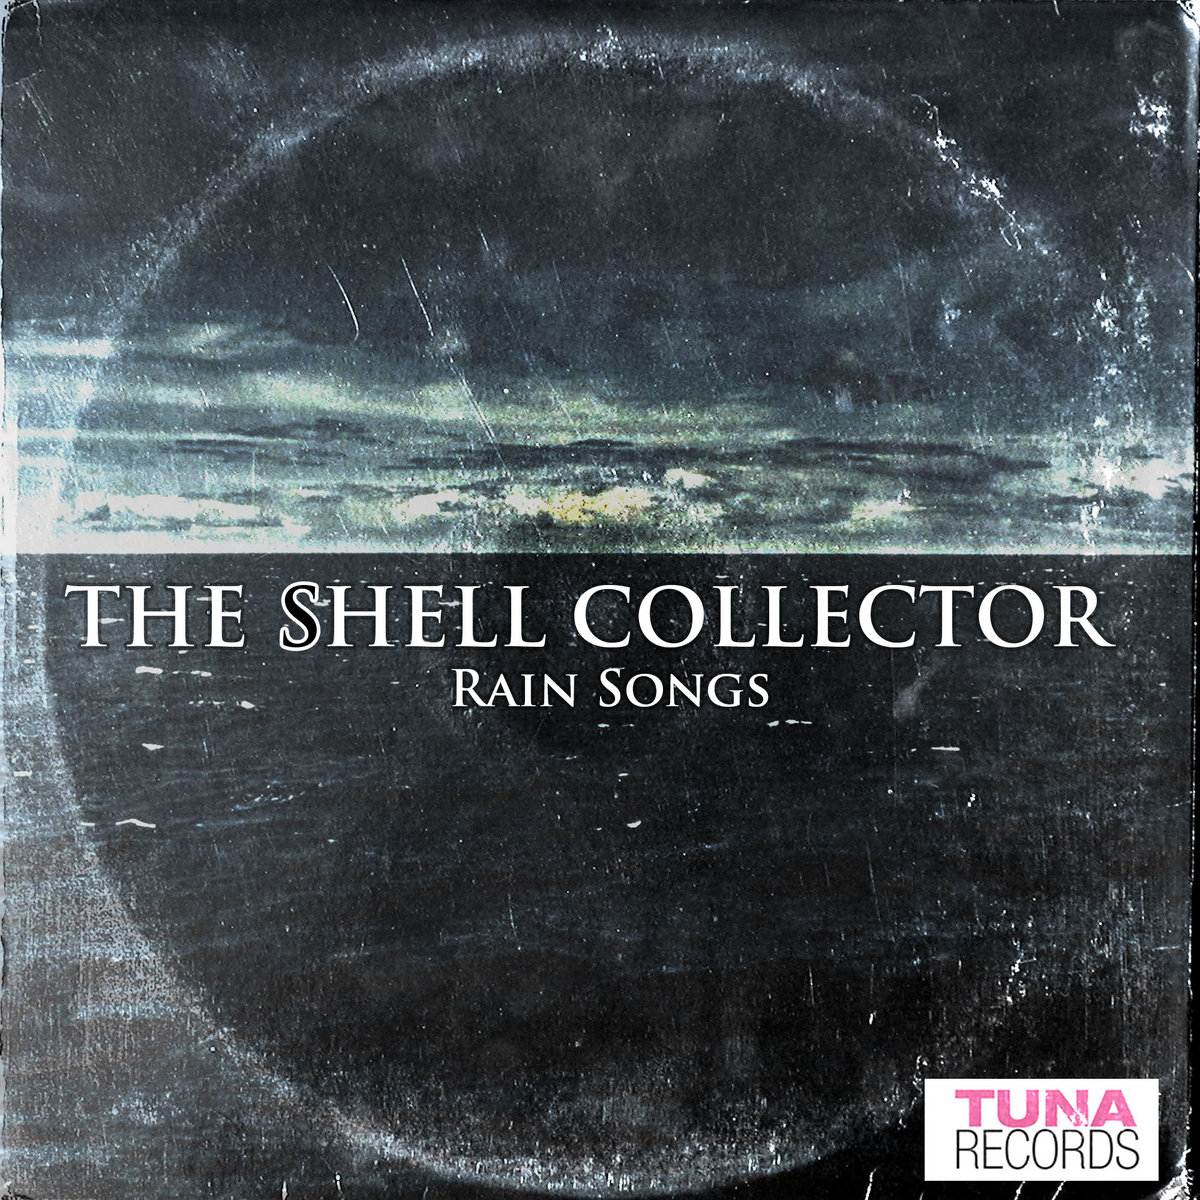 By The Shell Collector